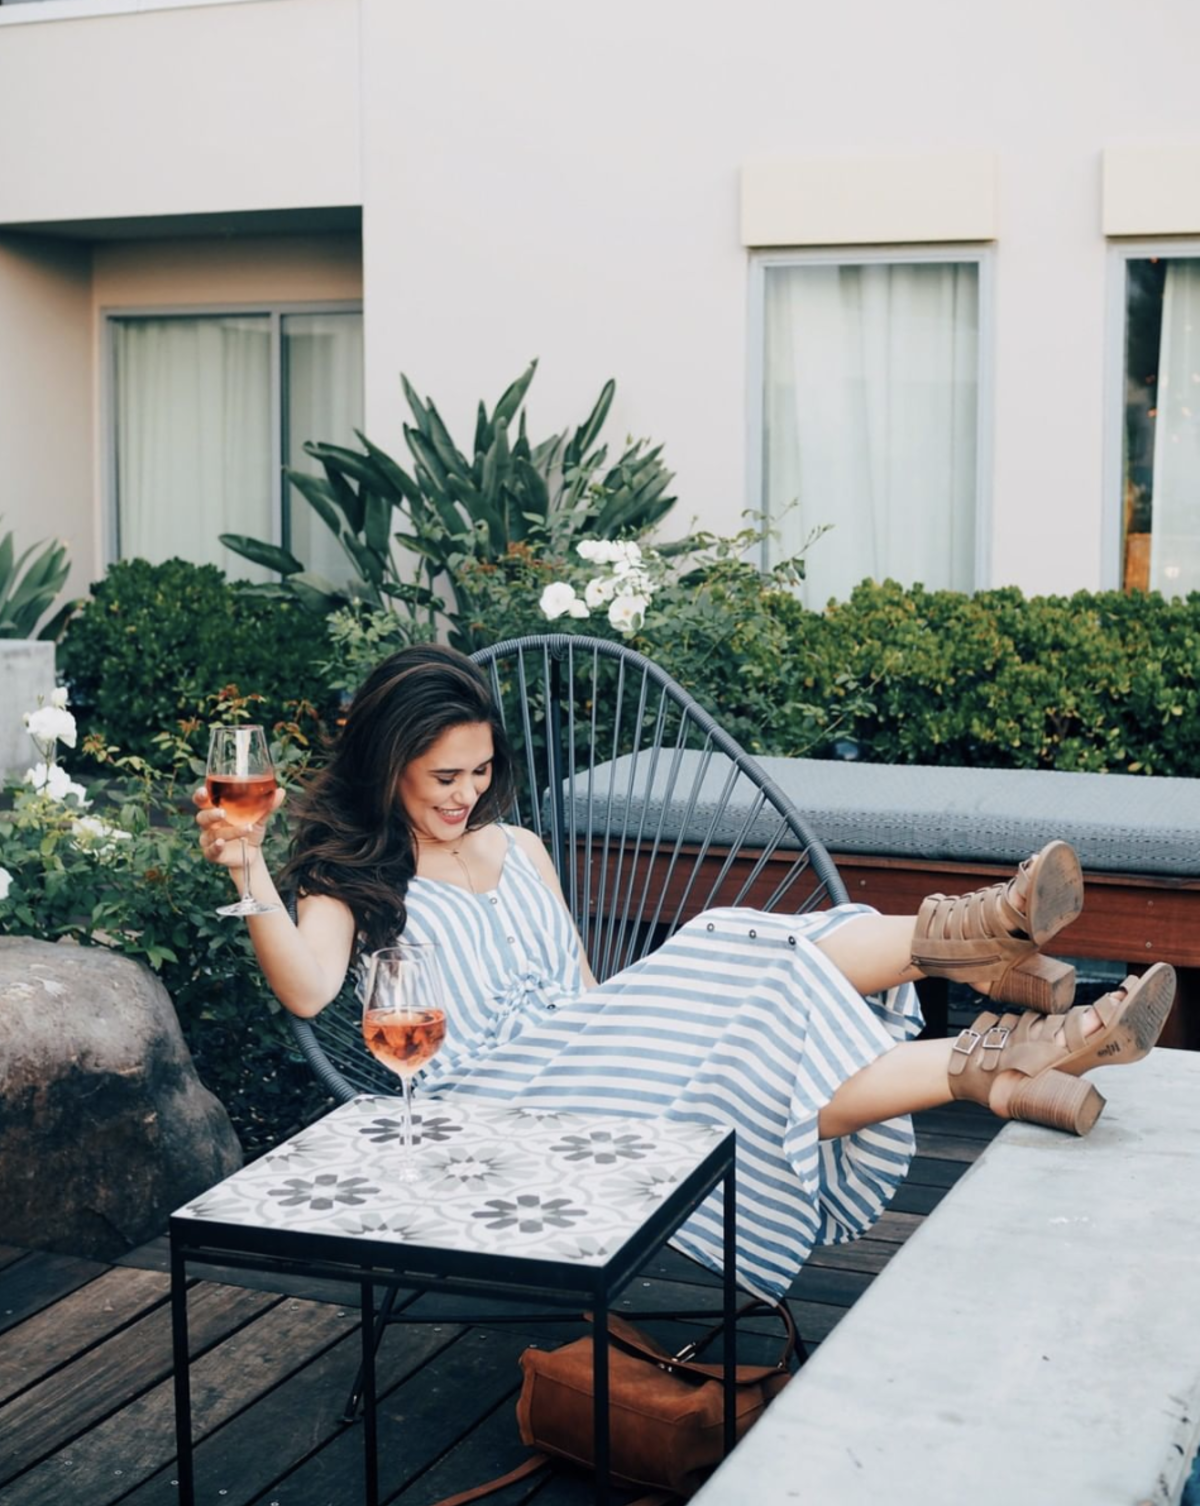 A smiling woman enjoying a glass of wine in the outdoor seating area of the Kimpton Shorebreak Resort in Huntington Beach California